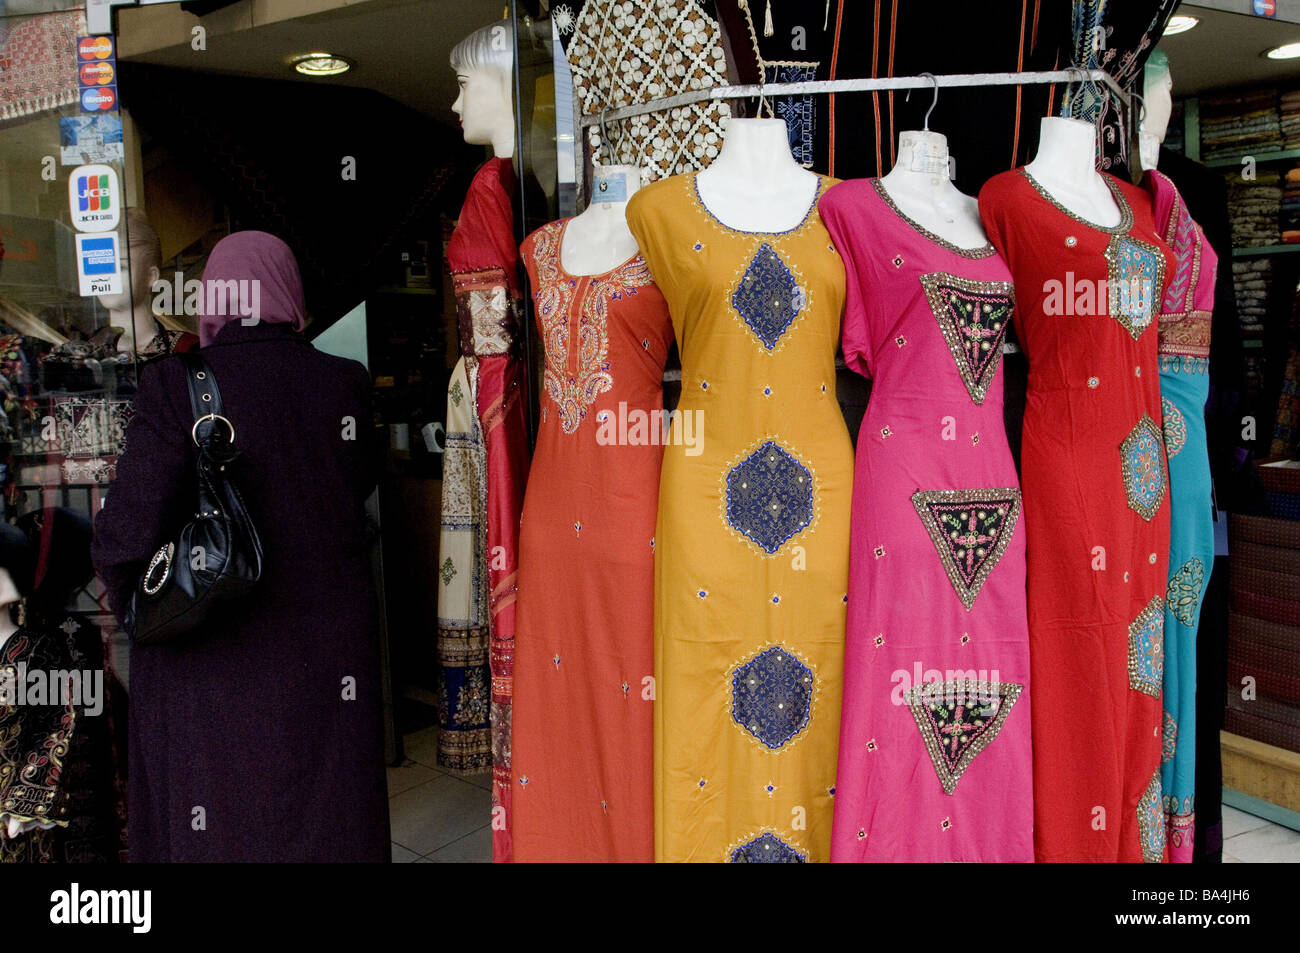 13b3bebd2ce8 Jordan Amman clothing-business Near east city capital business trade sale  ware clothes-dolls clothes women-clothes typically